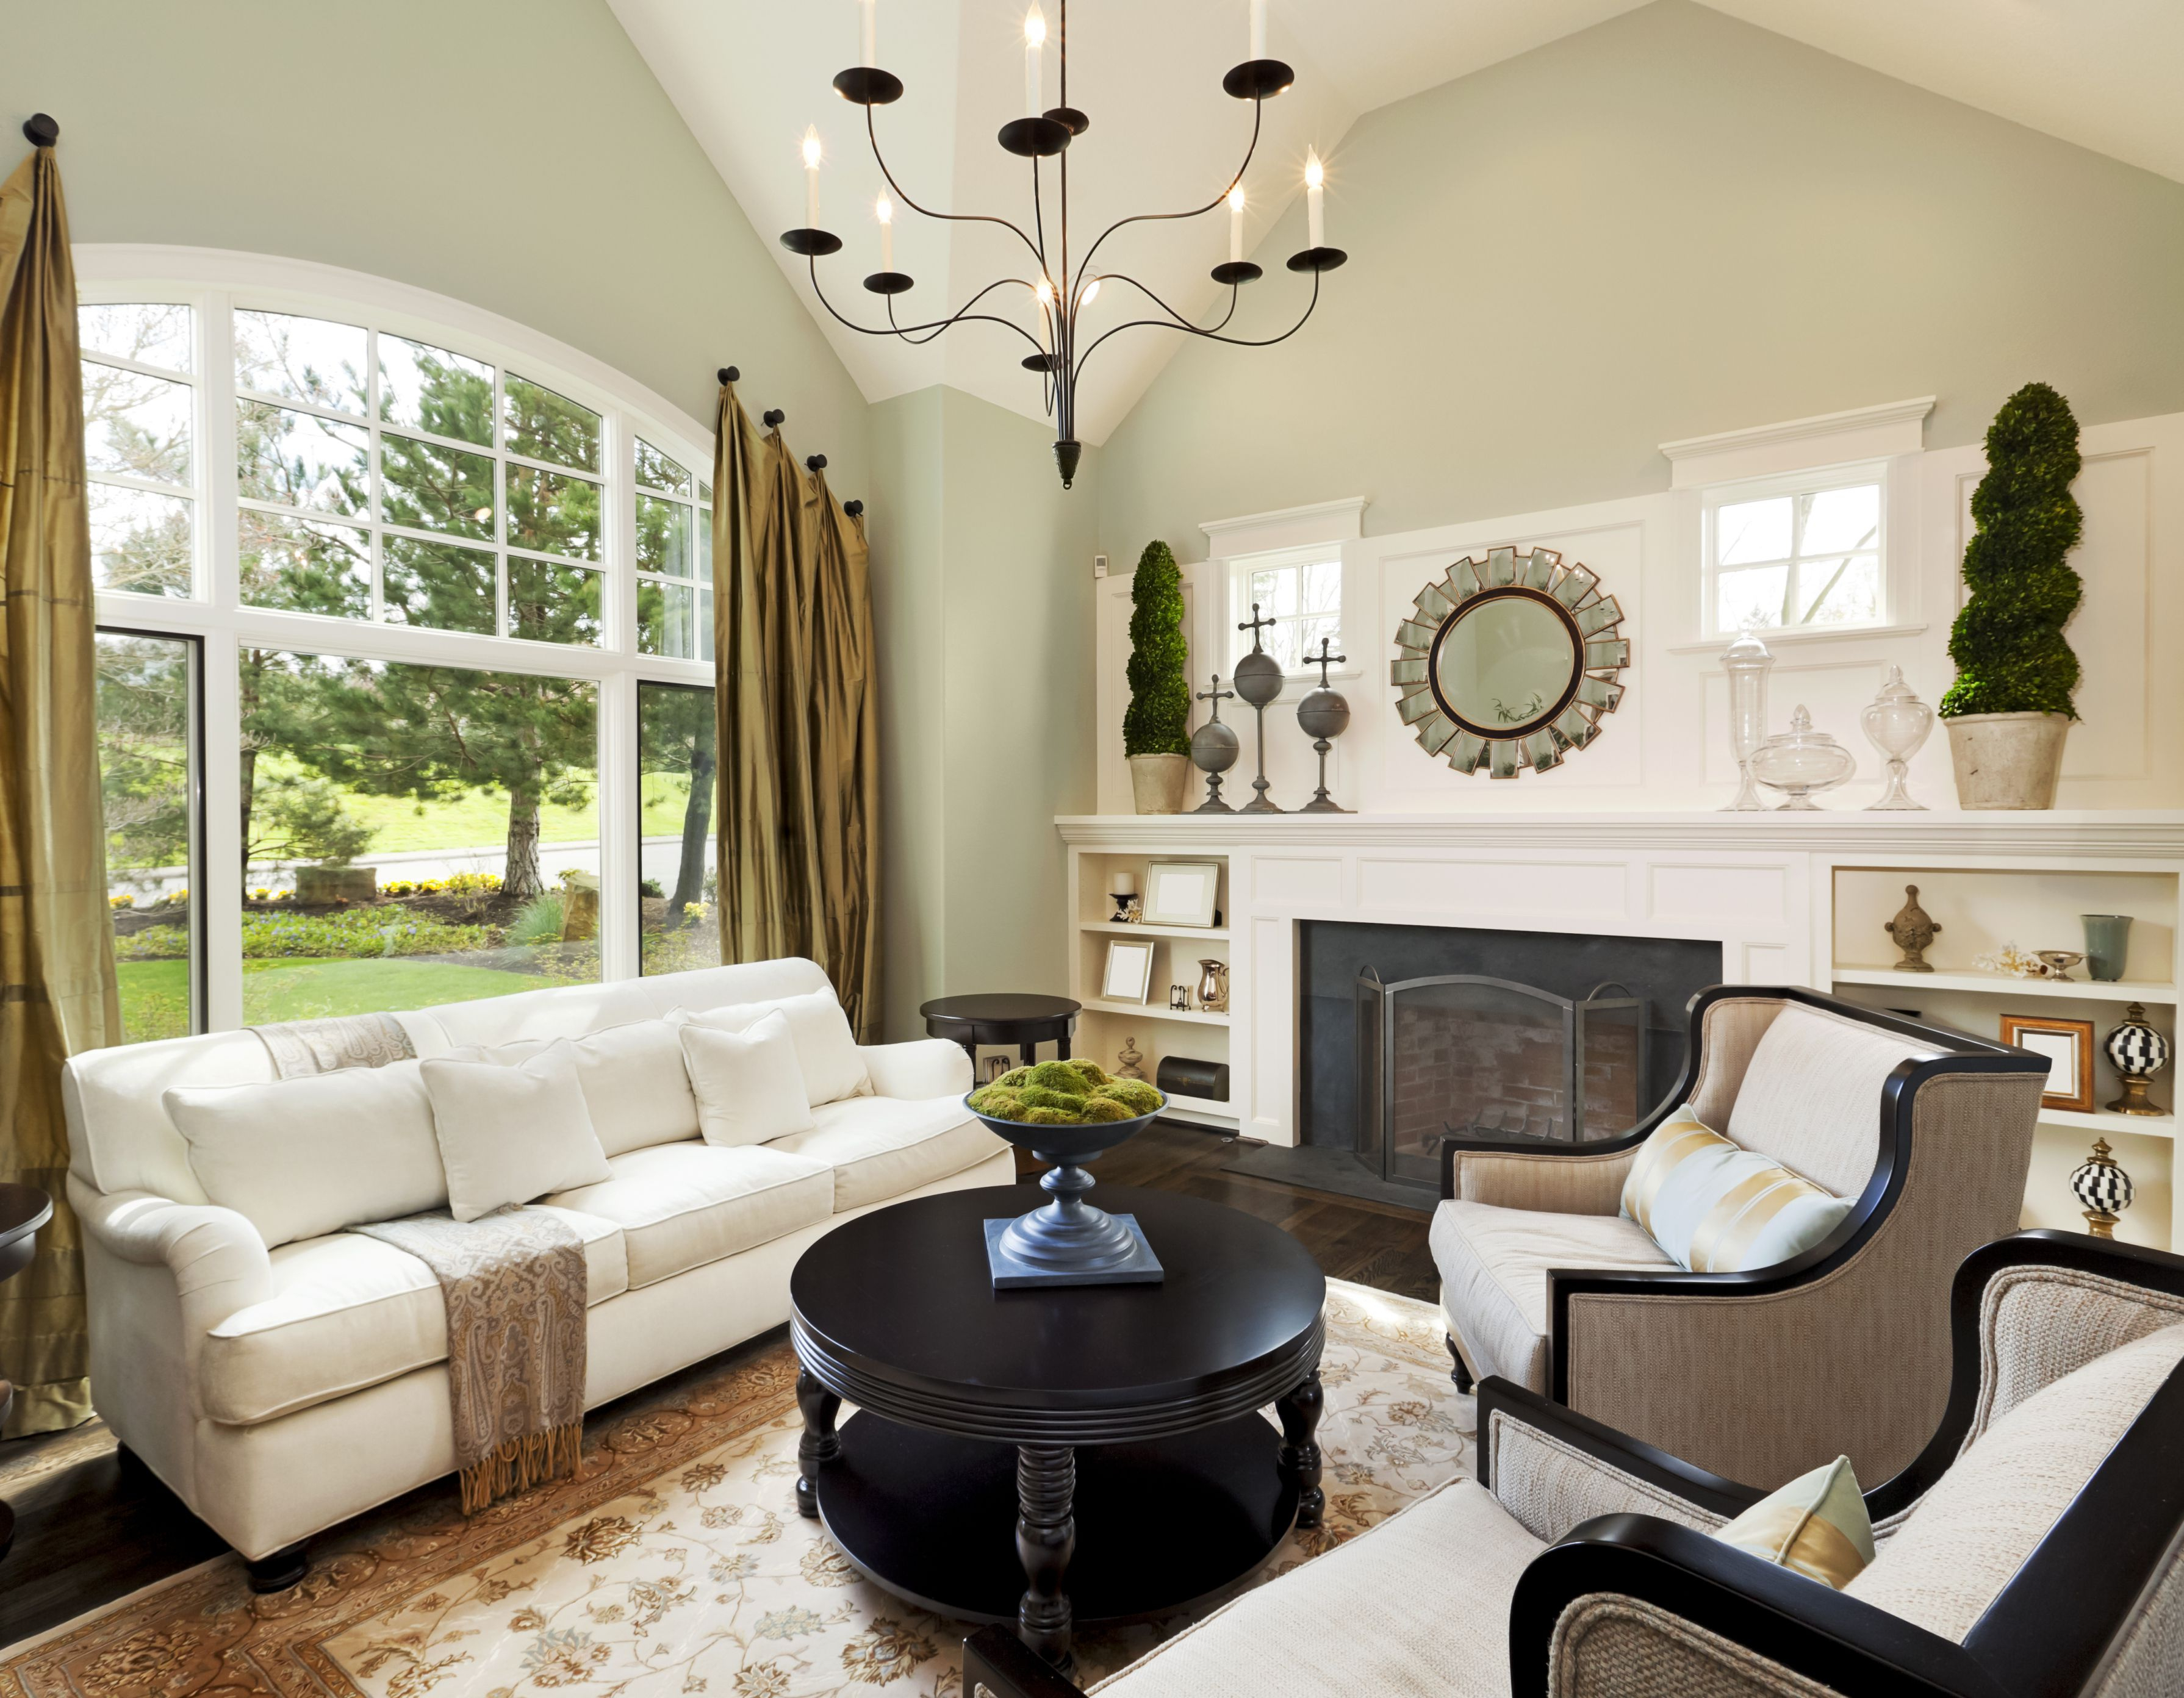 10 Best Ideas For Living Room Decoration the beginners guide to decorating living rooms 2020